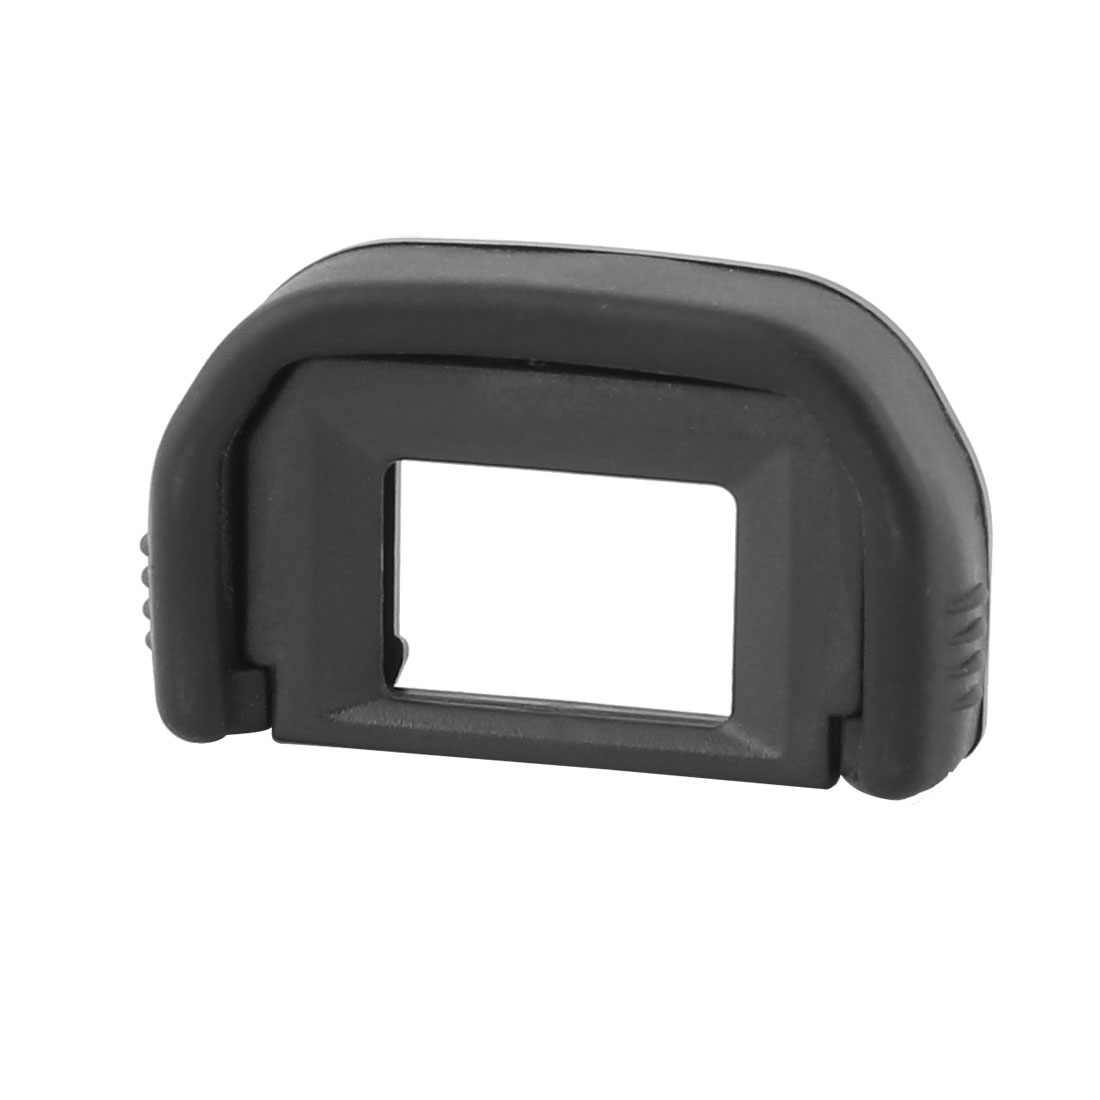 Cameraman Camera Black Eyepiece Eyecup Parts